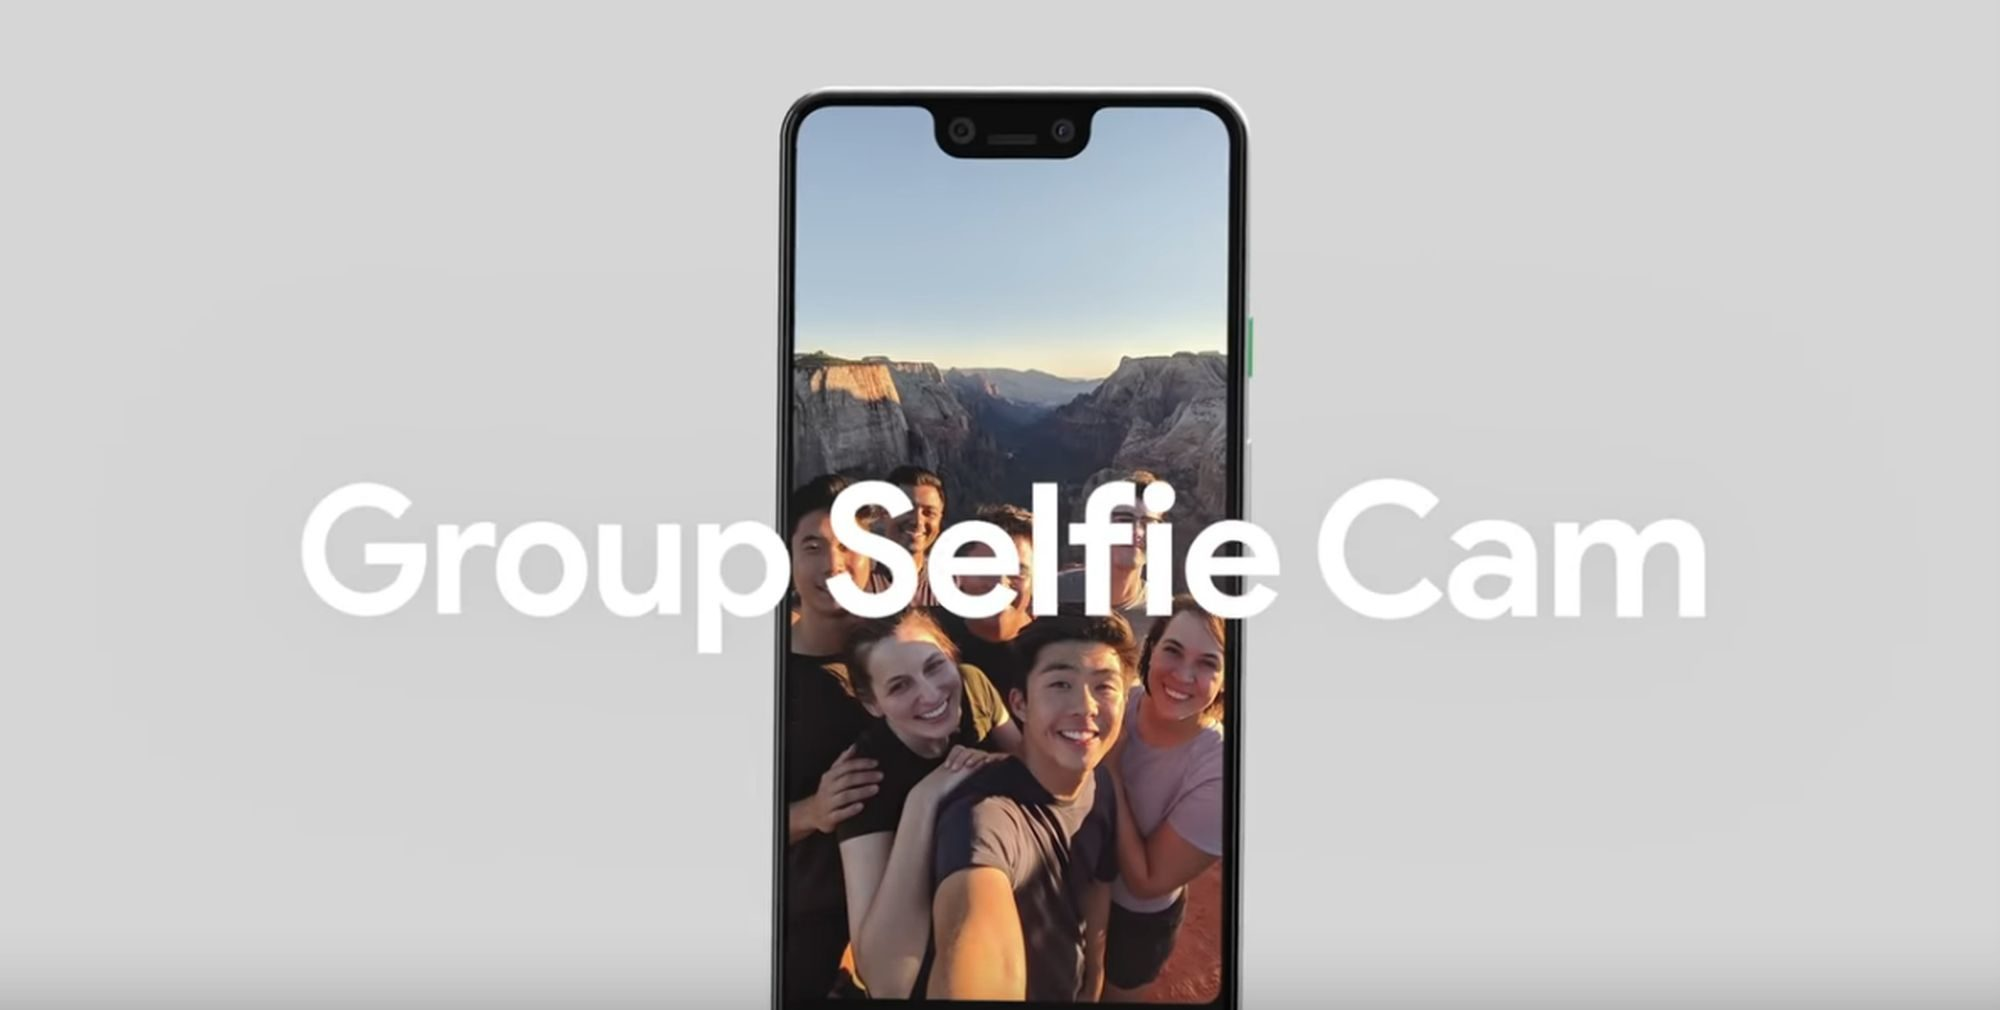 Group-Selfie-Cam-all-you-need-to-know-e1539205425557